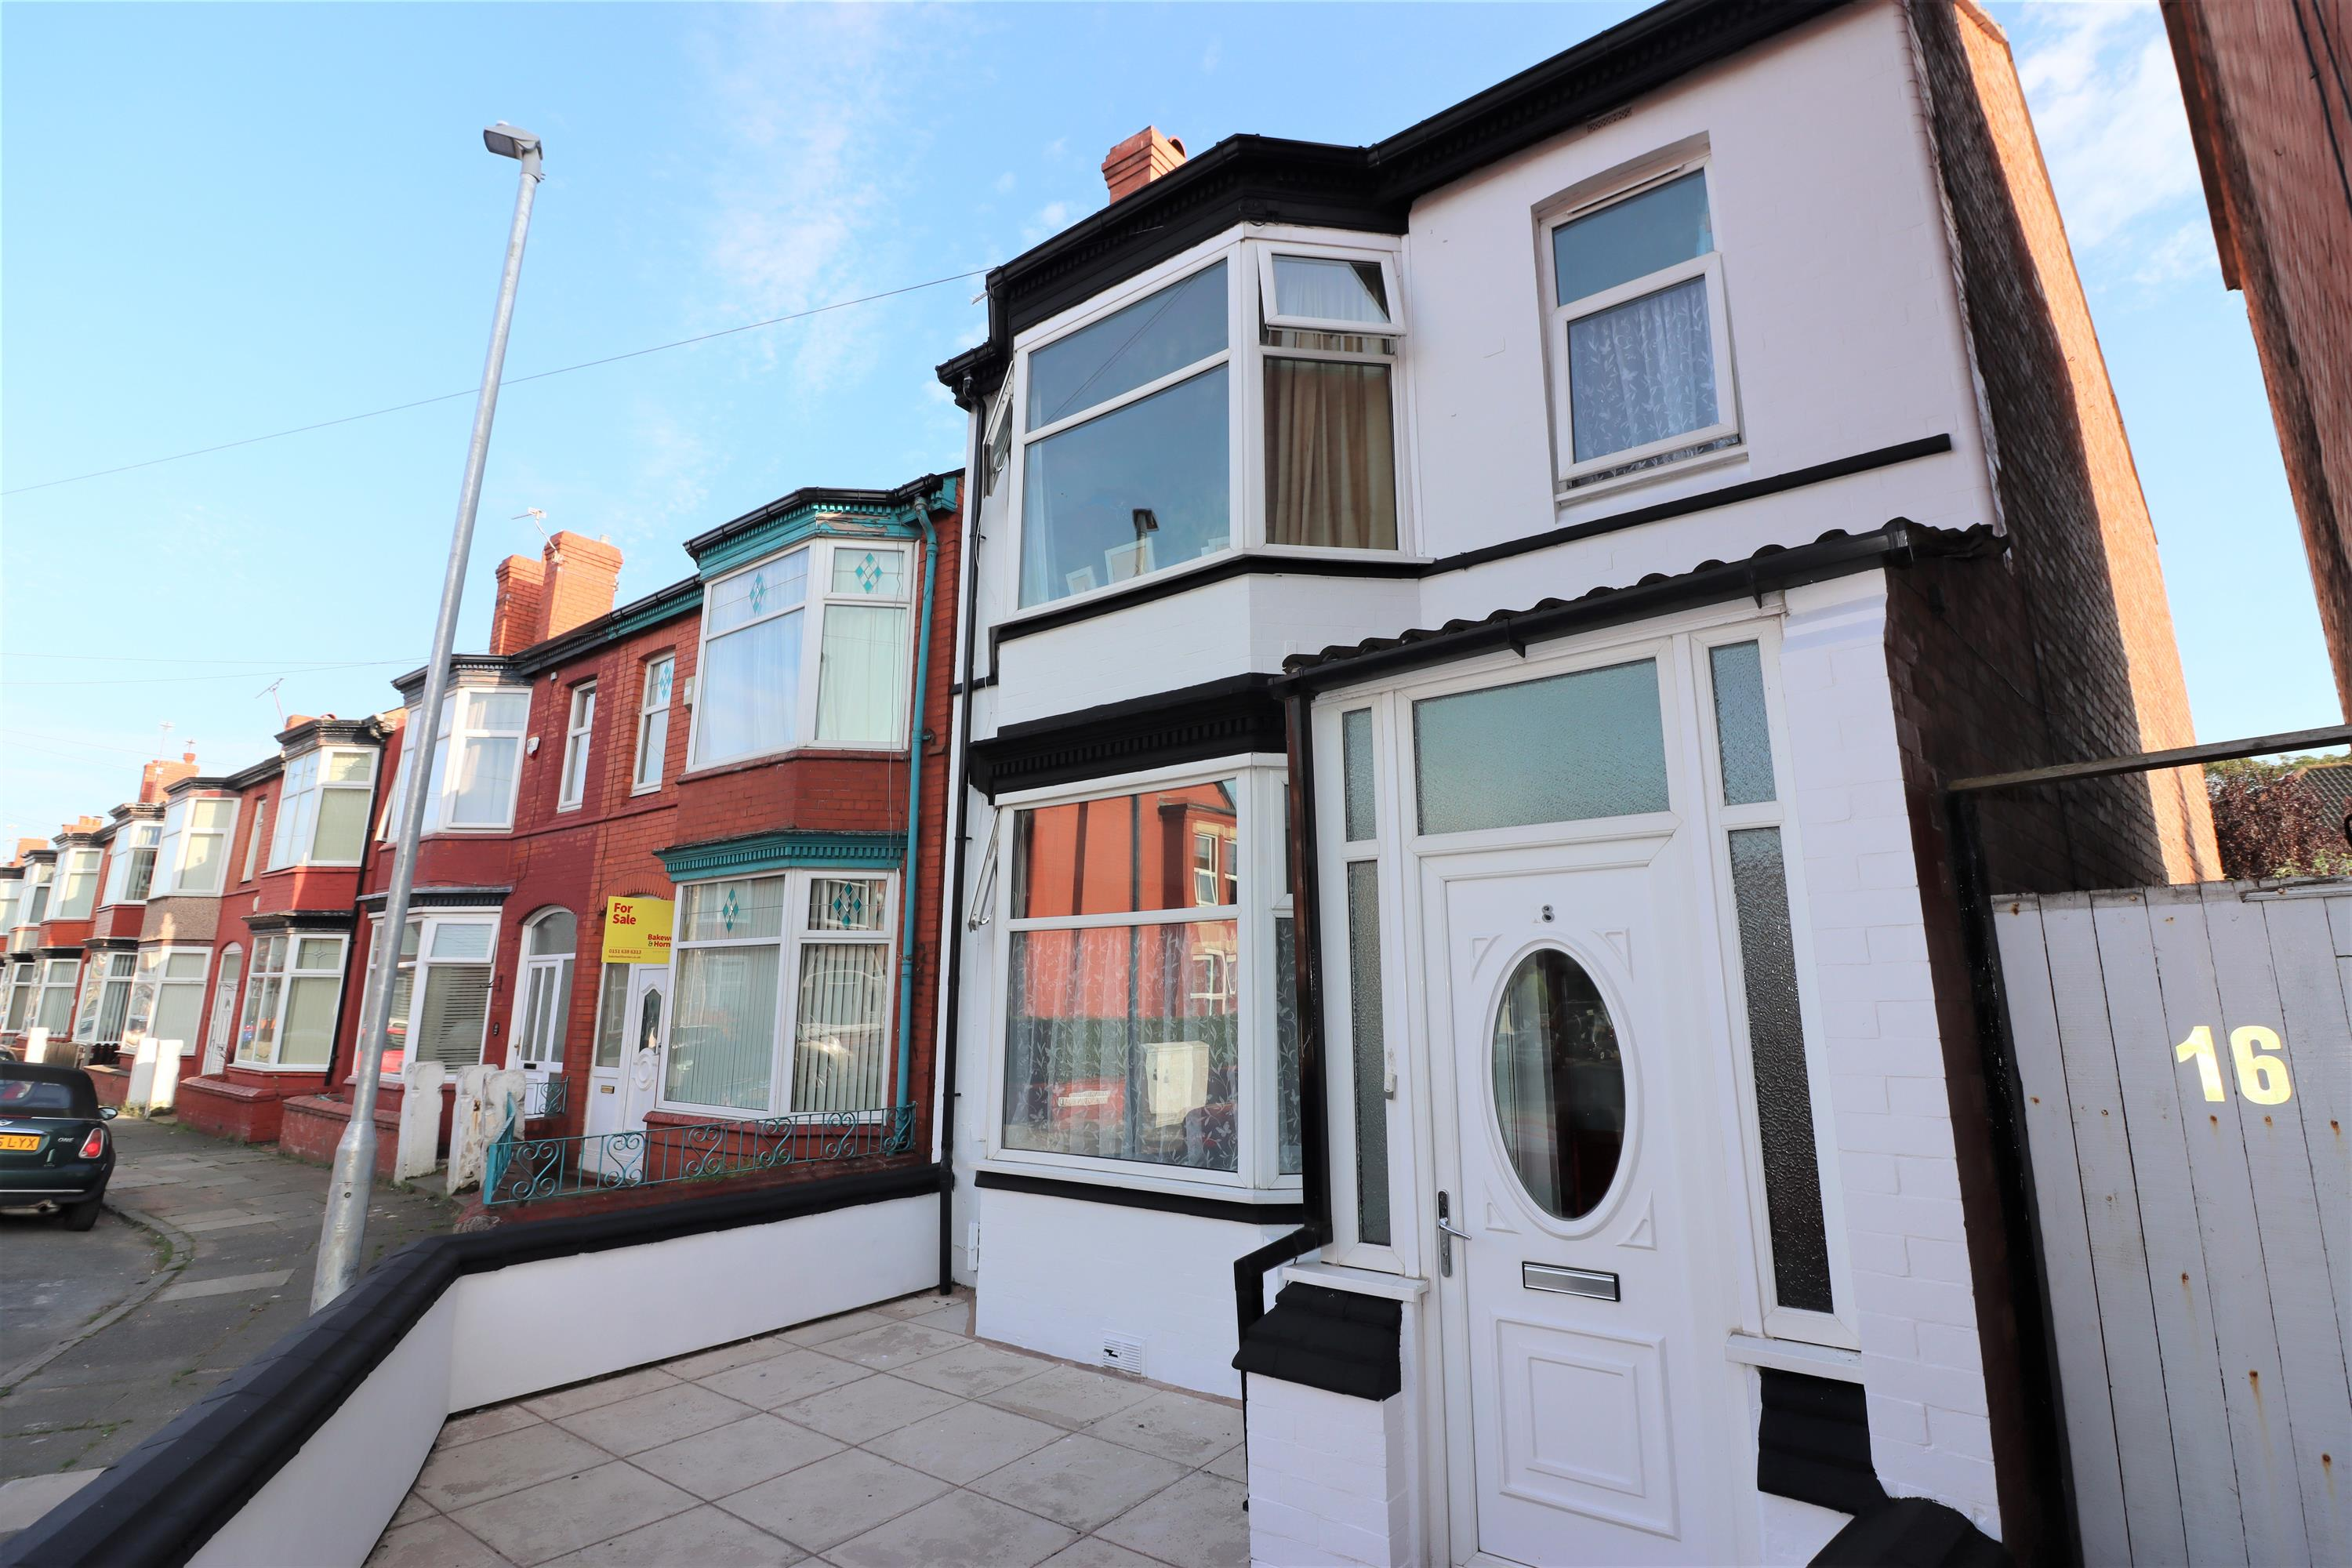 Strathcona Road, Wallasey, Wirral, CH45 7NB